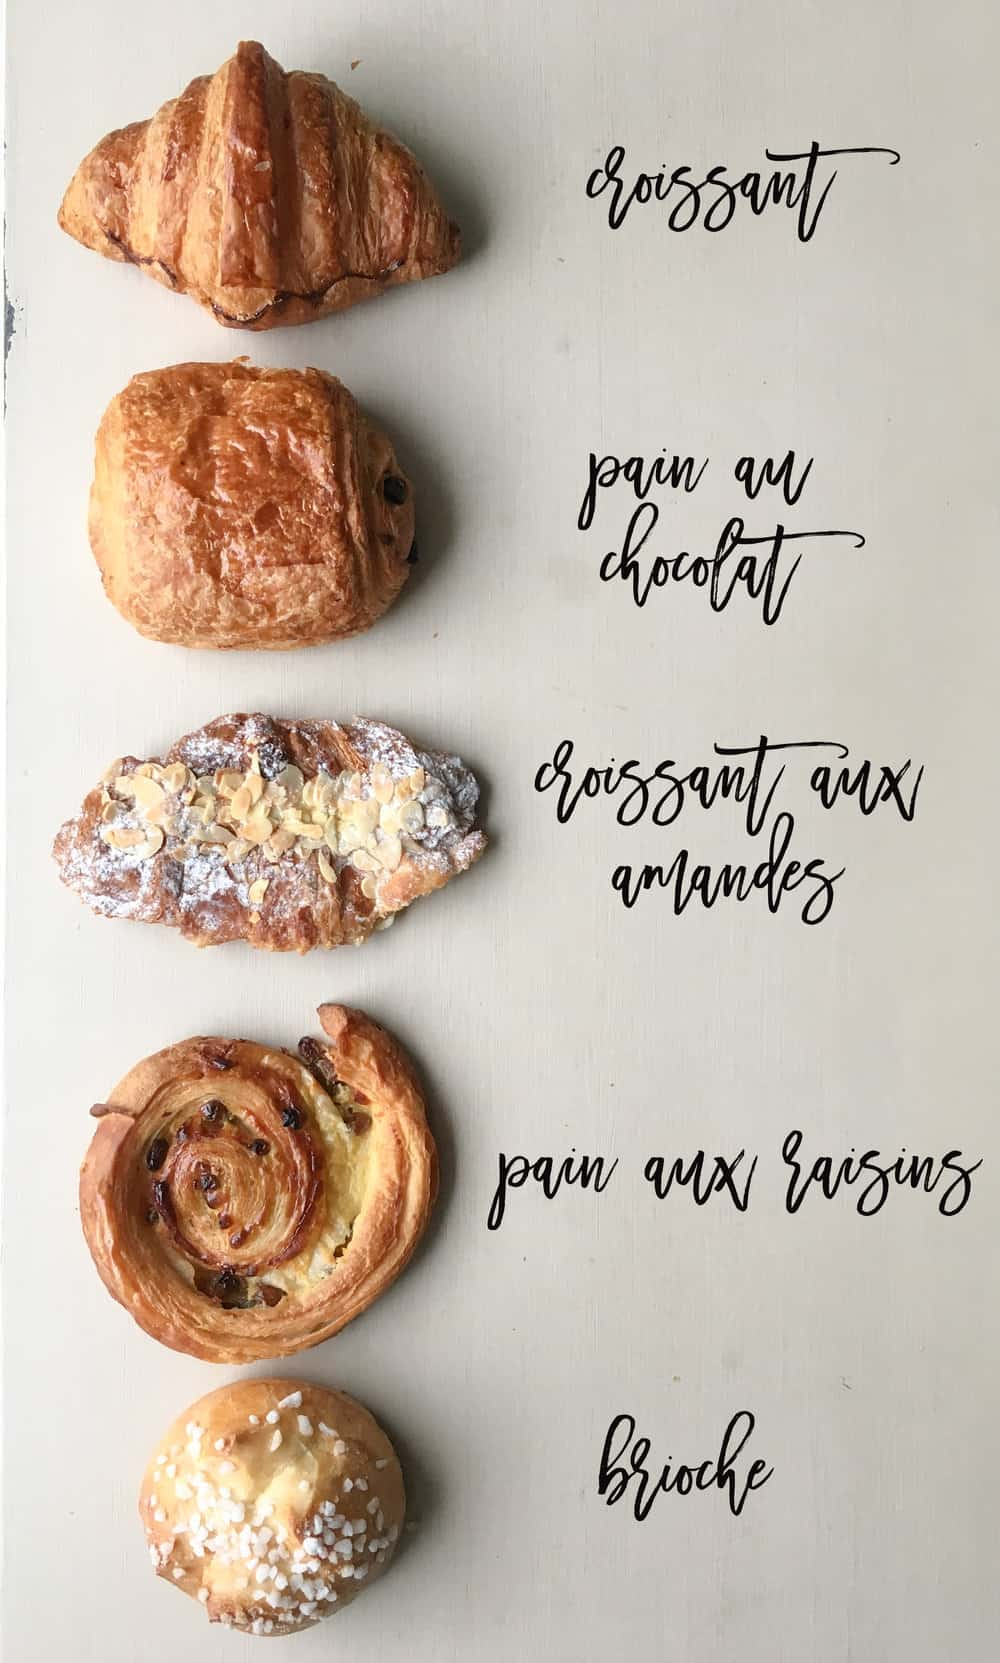 5 ways to order a Pastry in French